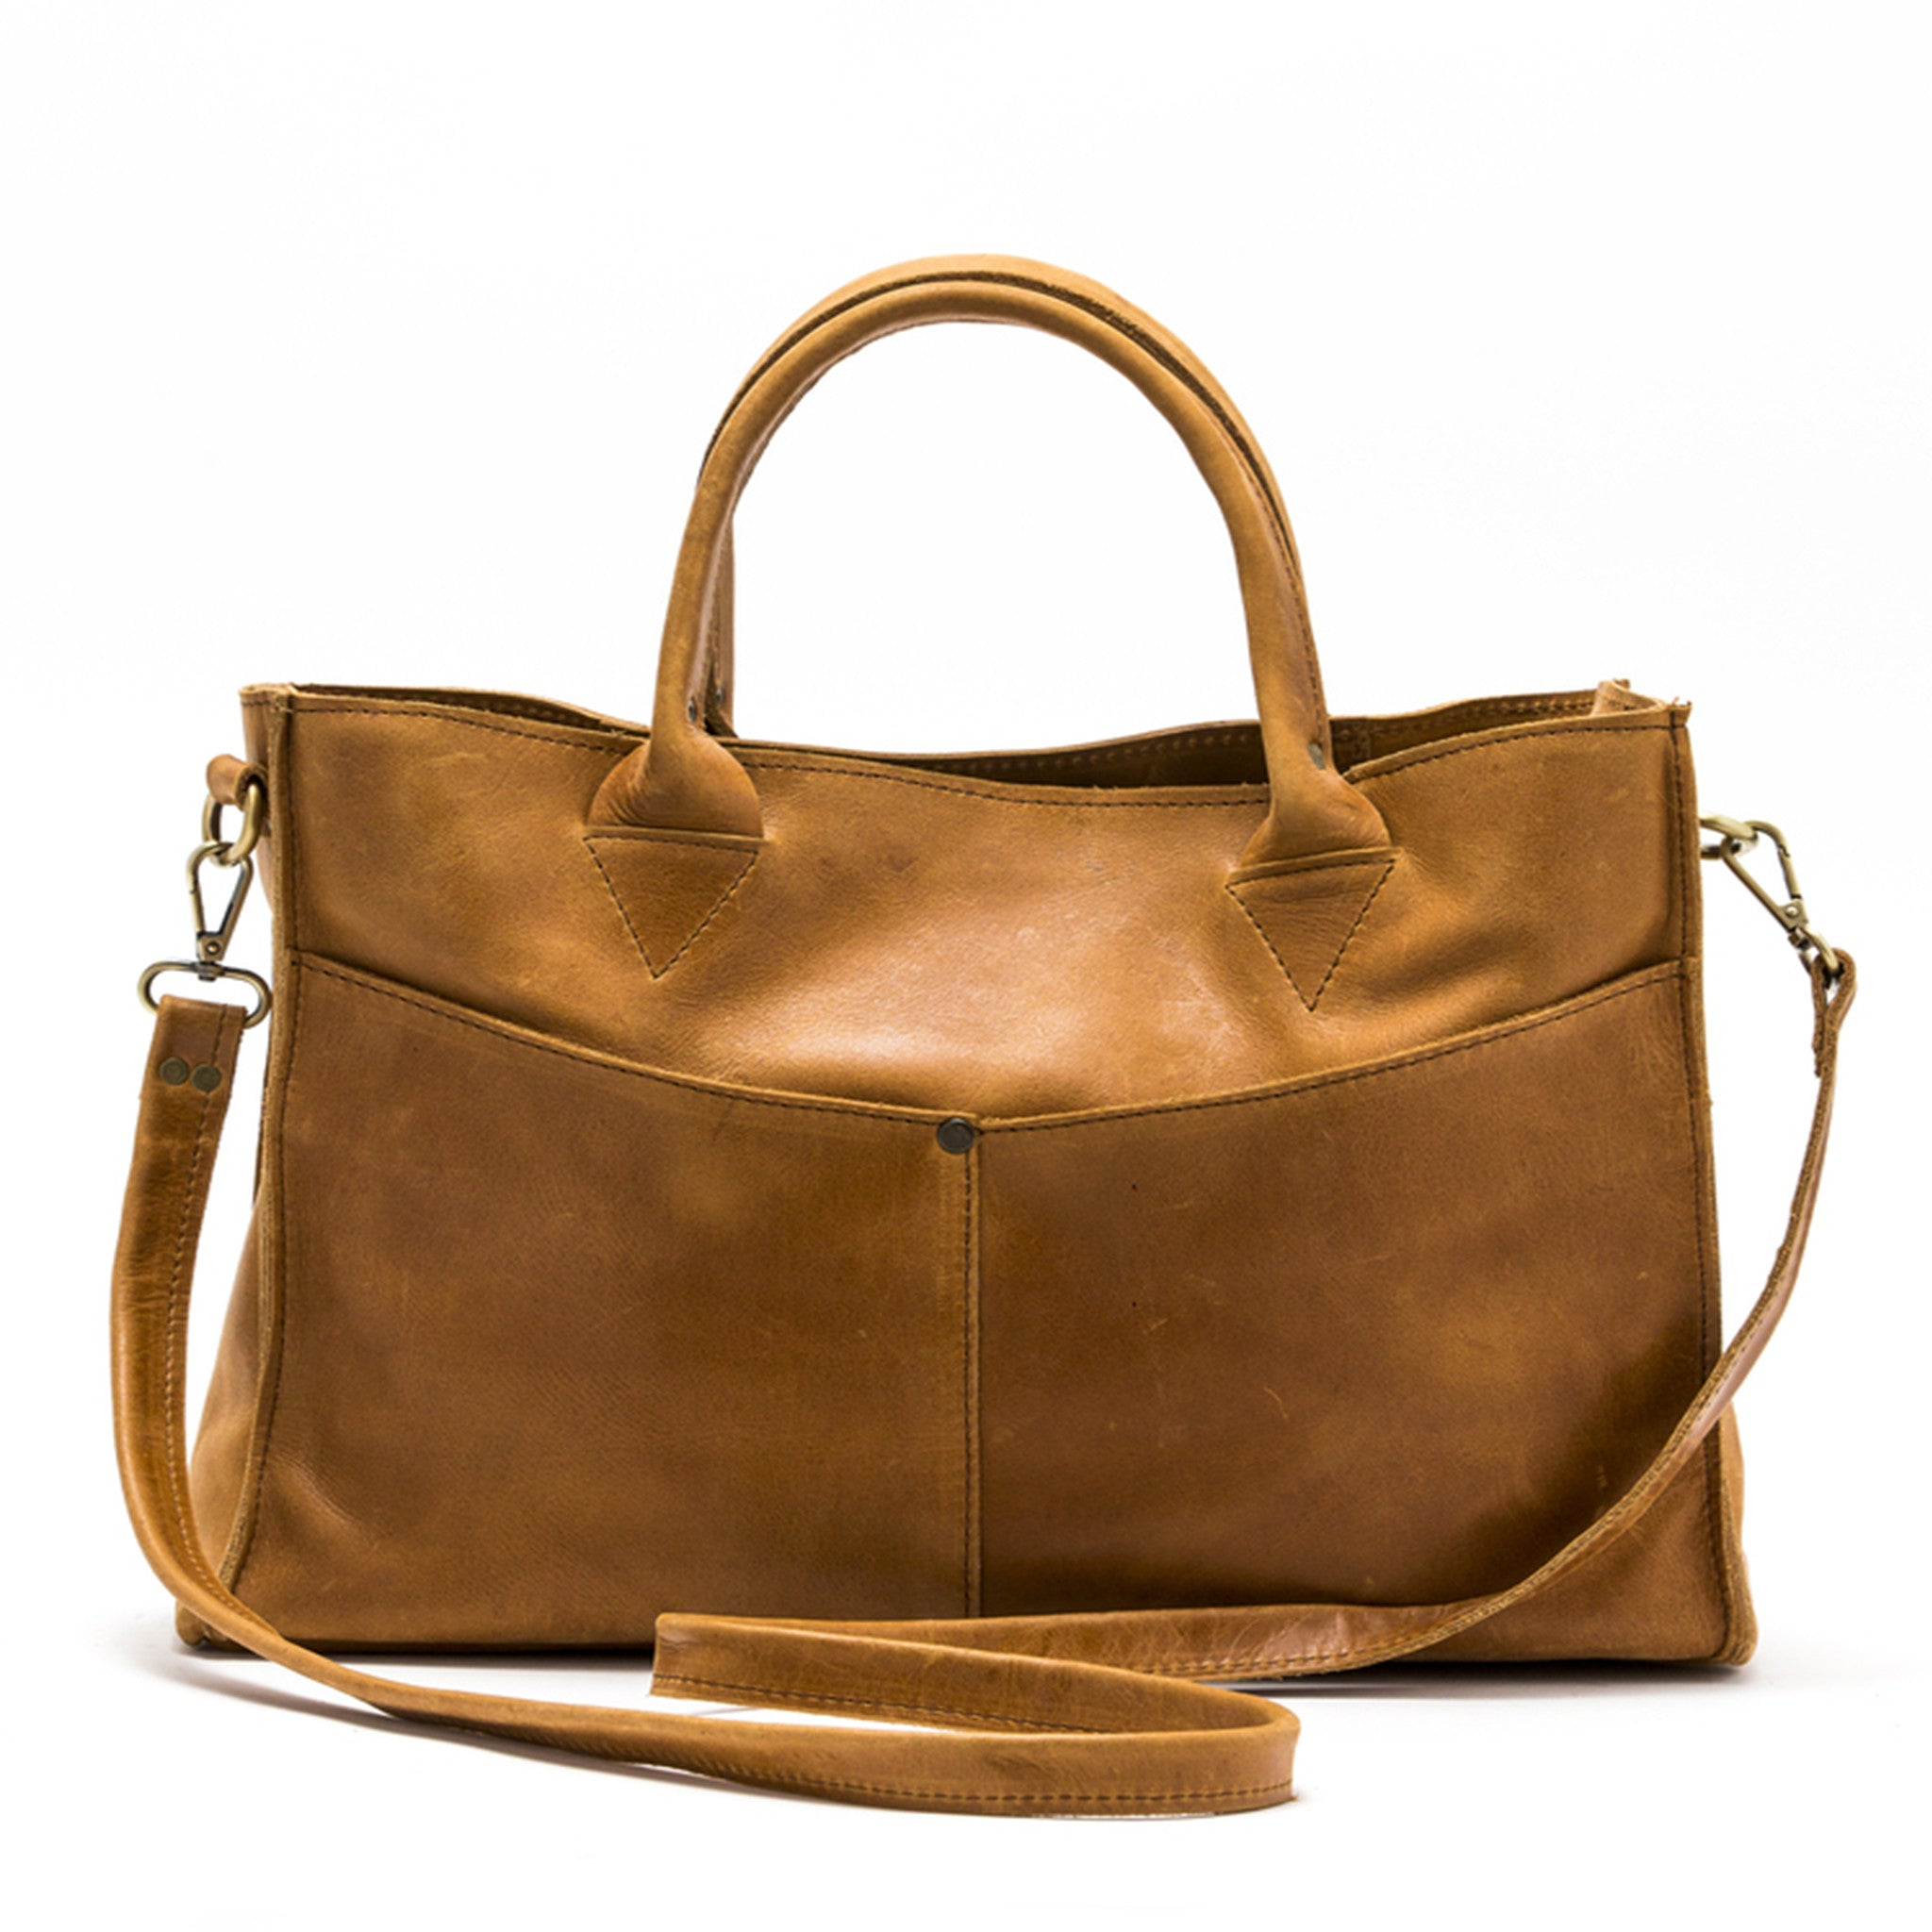 Kermen Convertible Handbag : Brown